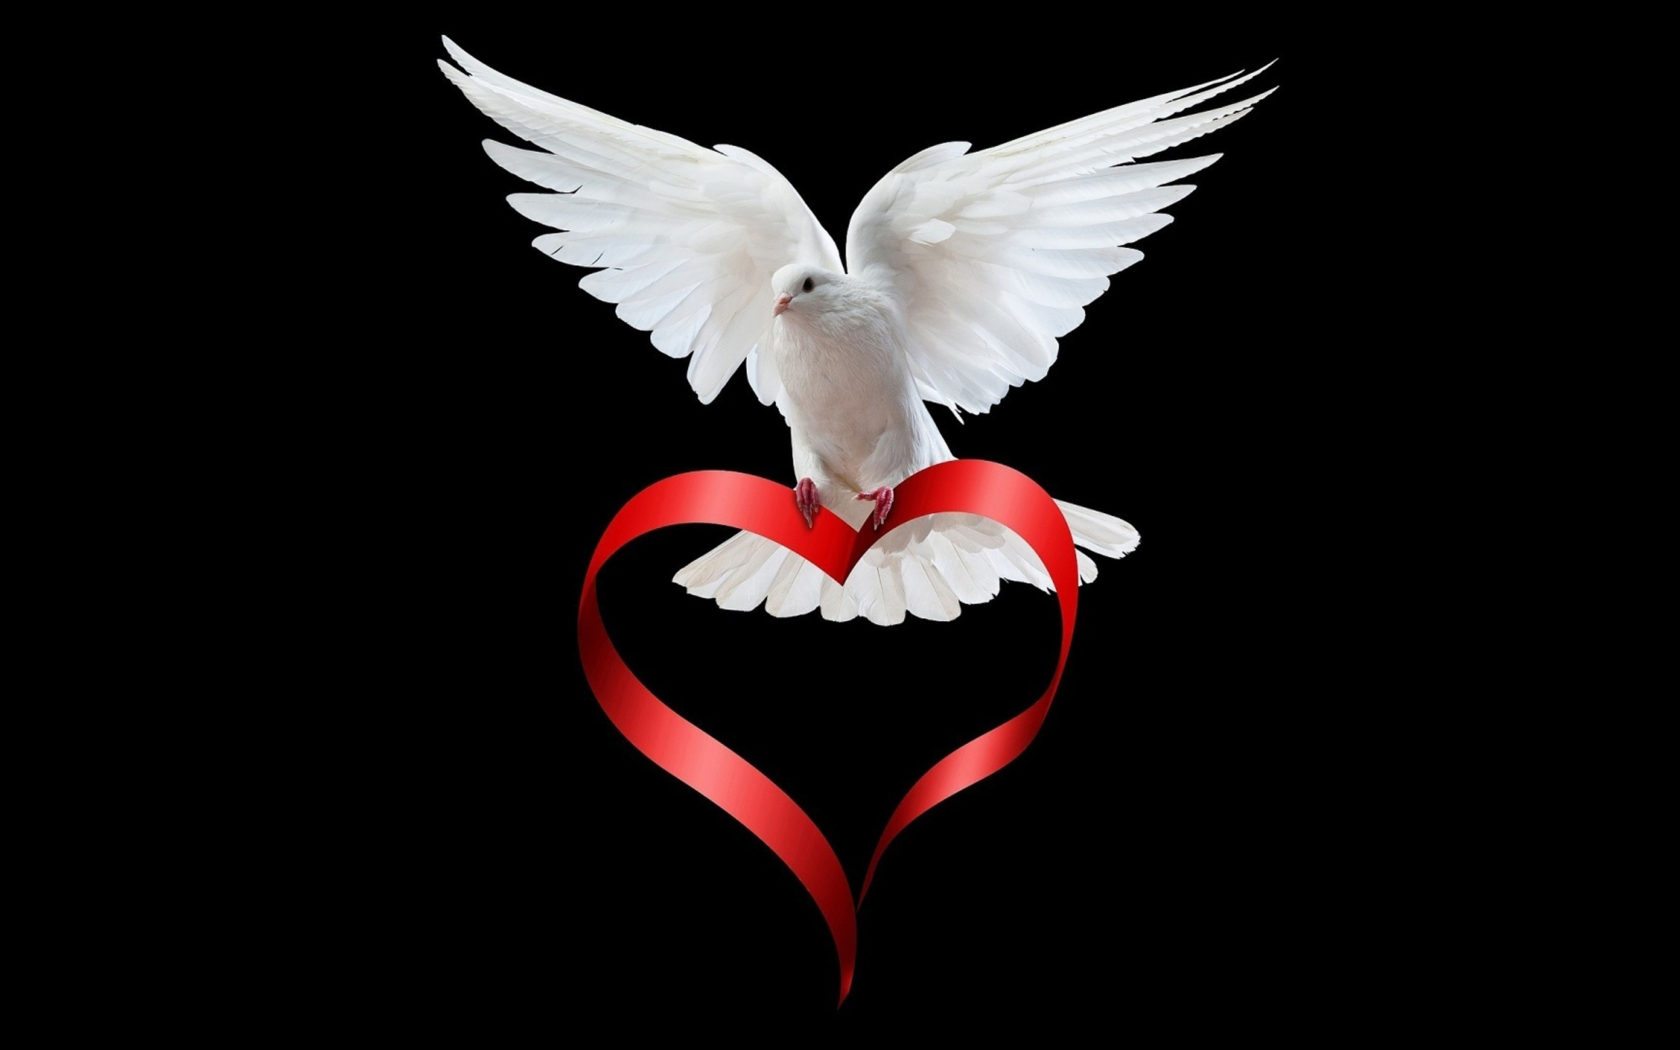 Animated Wallpaper For Android Phone Free Download Elegant Dove Download Free Wallpapers For Phone Wallpaper